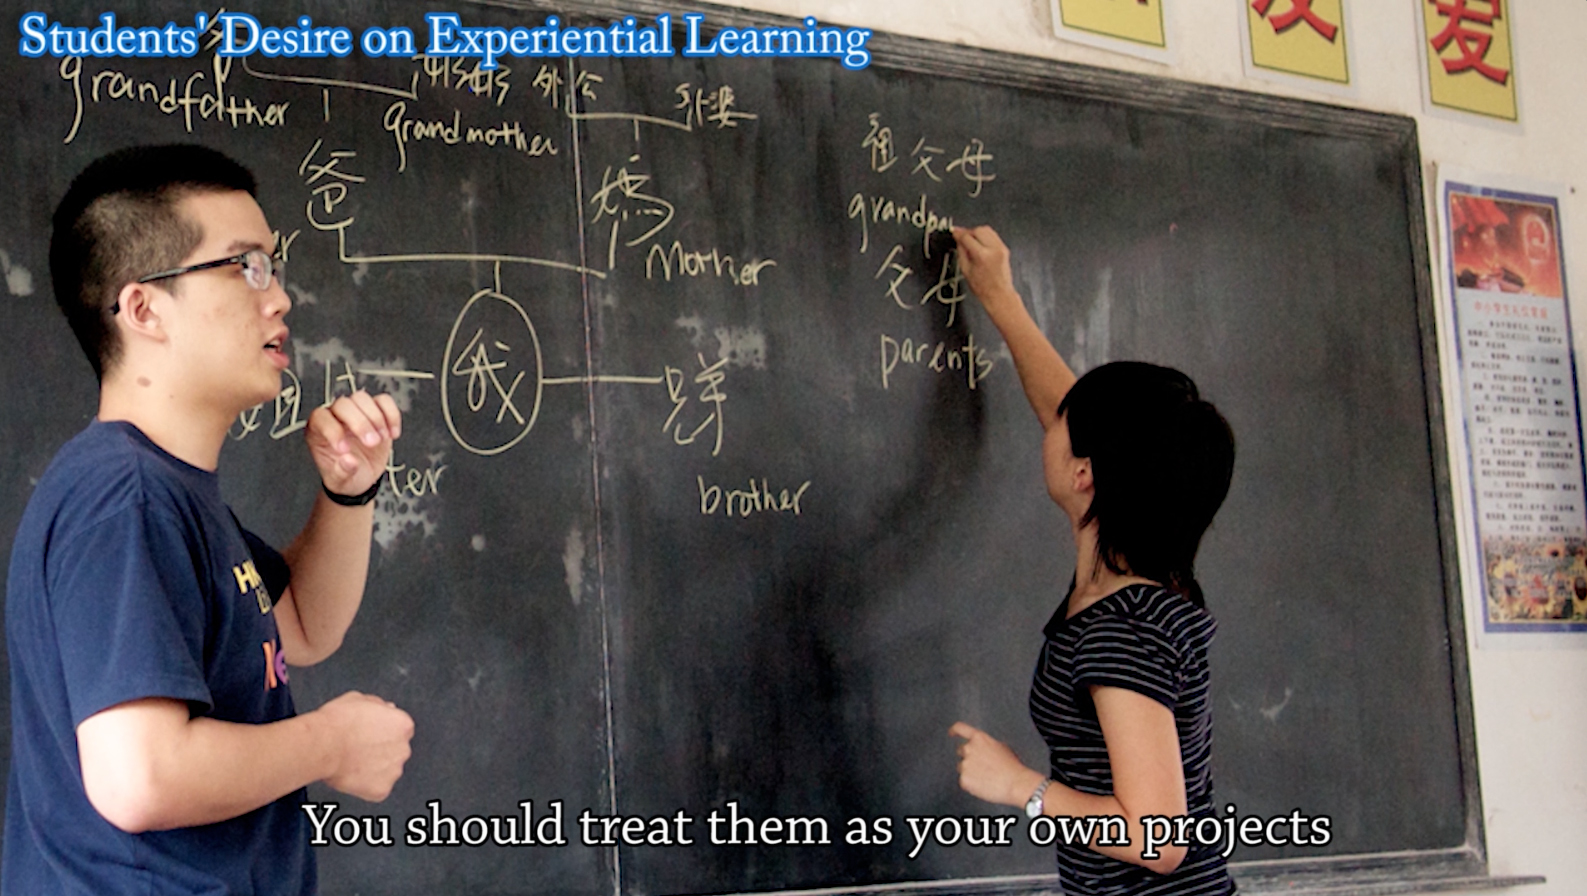 Students' Desire on Experiential Learning